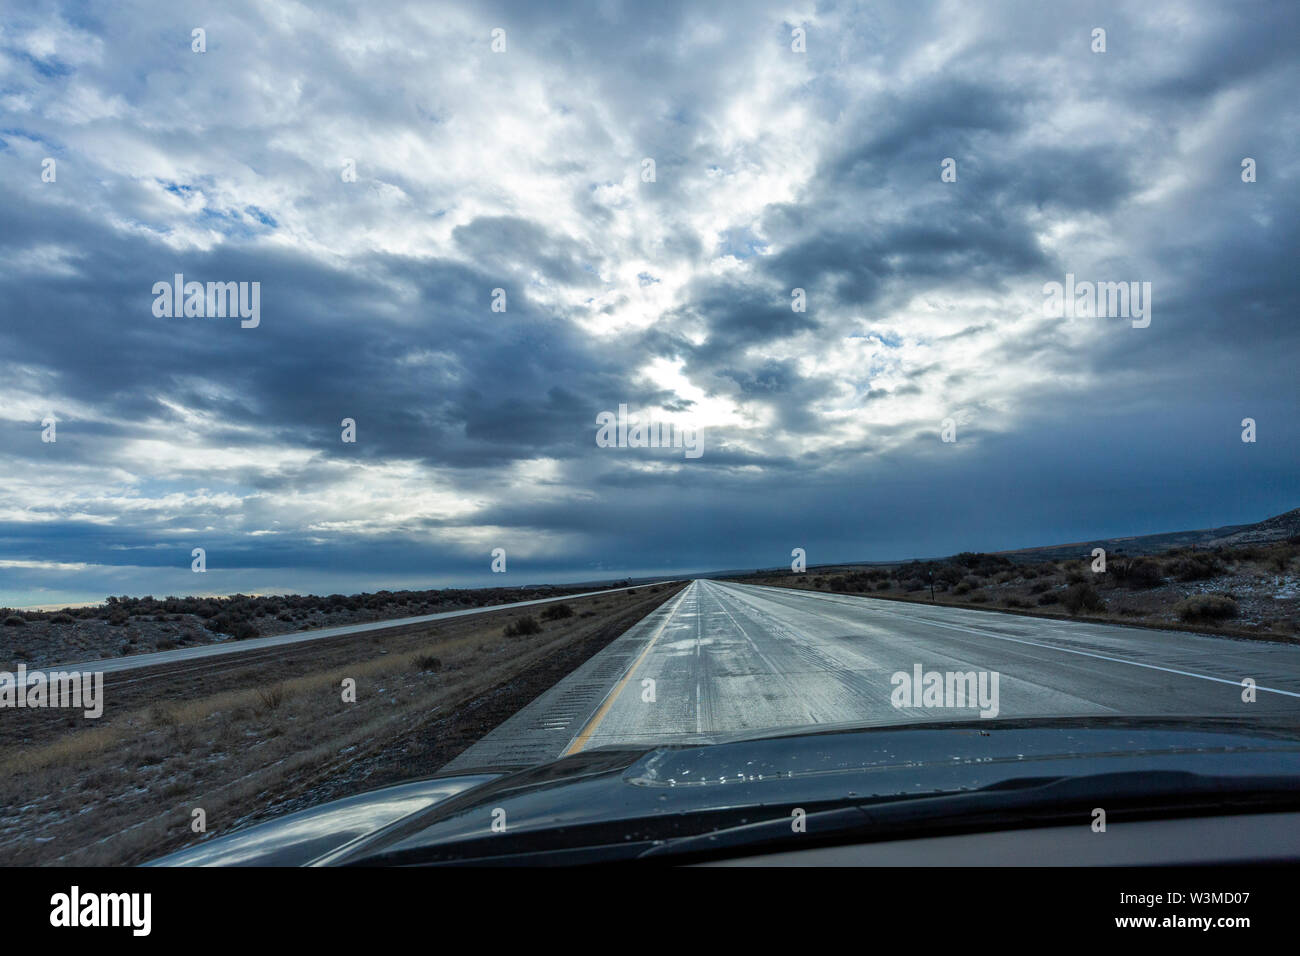 Car on country road under overcast sky - Stock Image